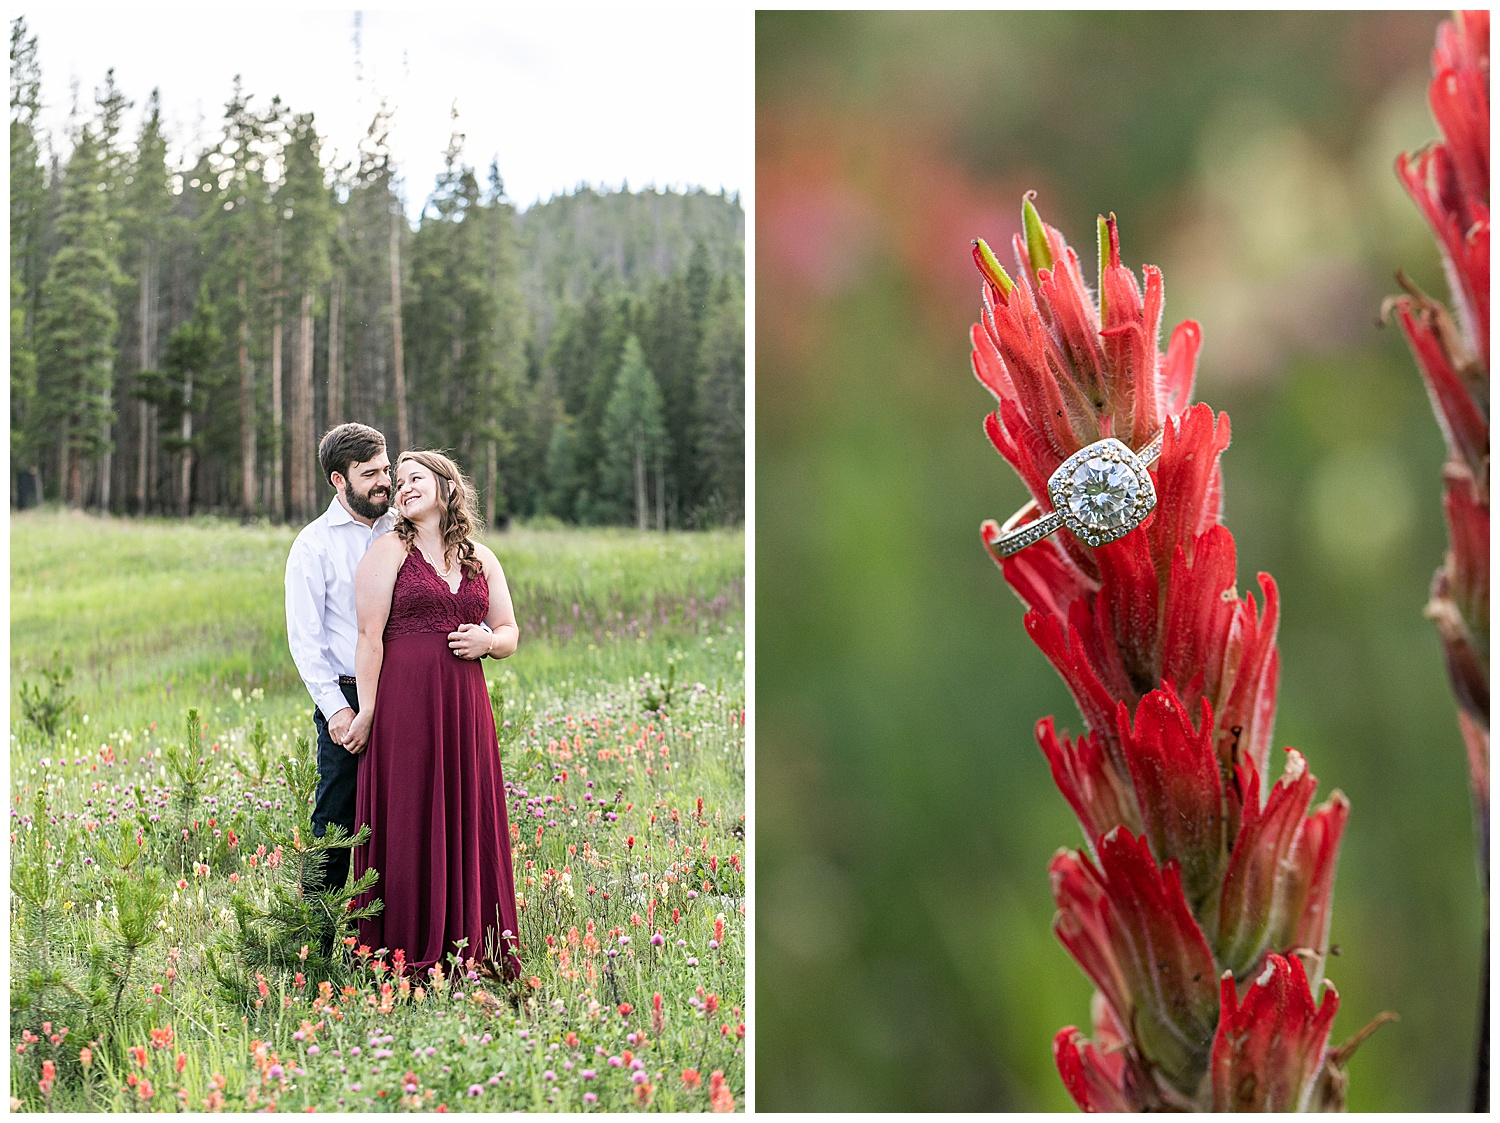 Molly + Ryan Breckenridge Destination Engagement Session Living Radiant Photography_0031.jpg